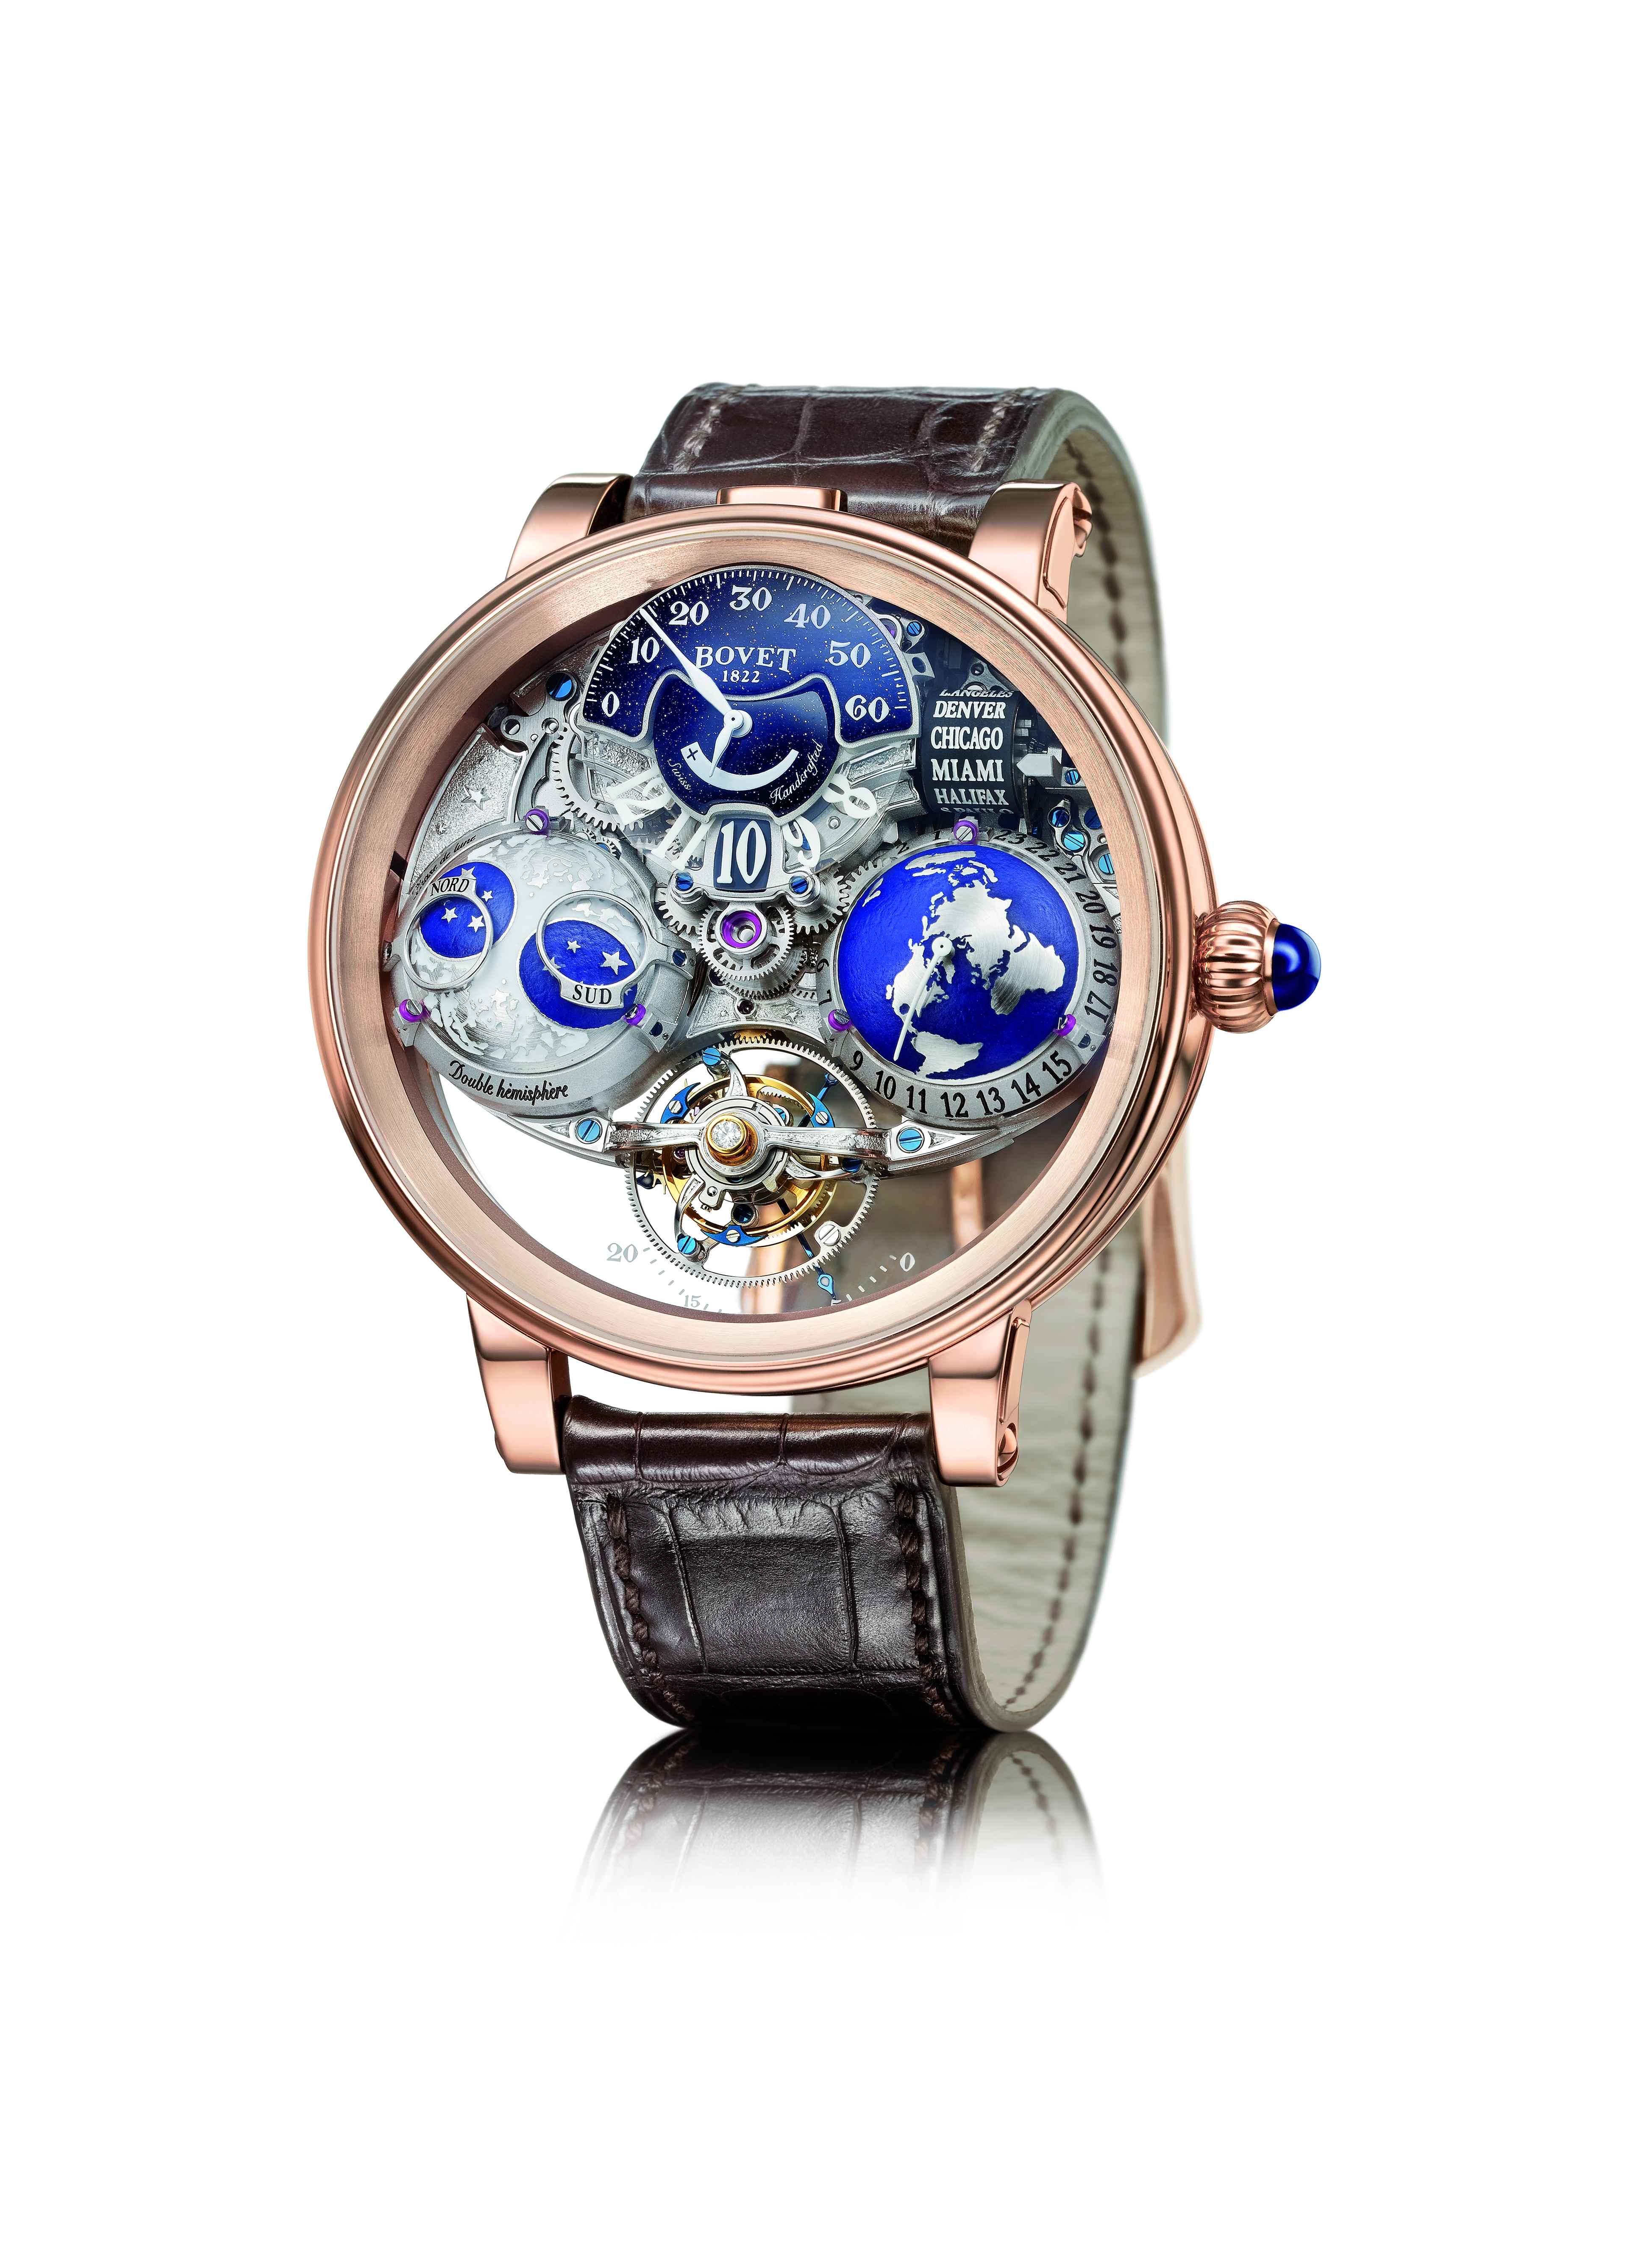 World-timer watches allow eight ways to see the globe | South China